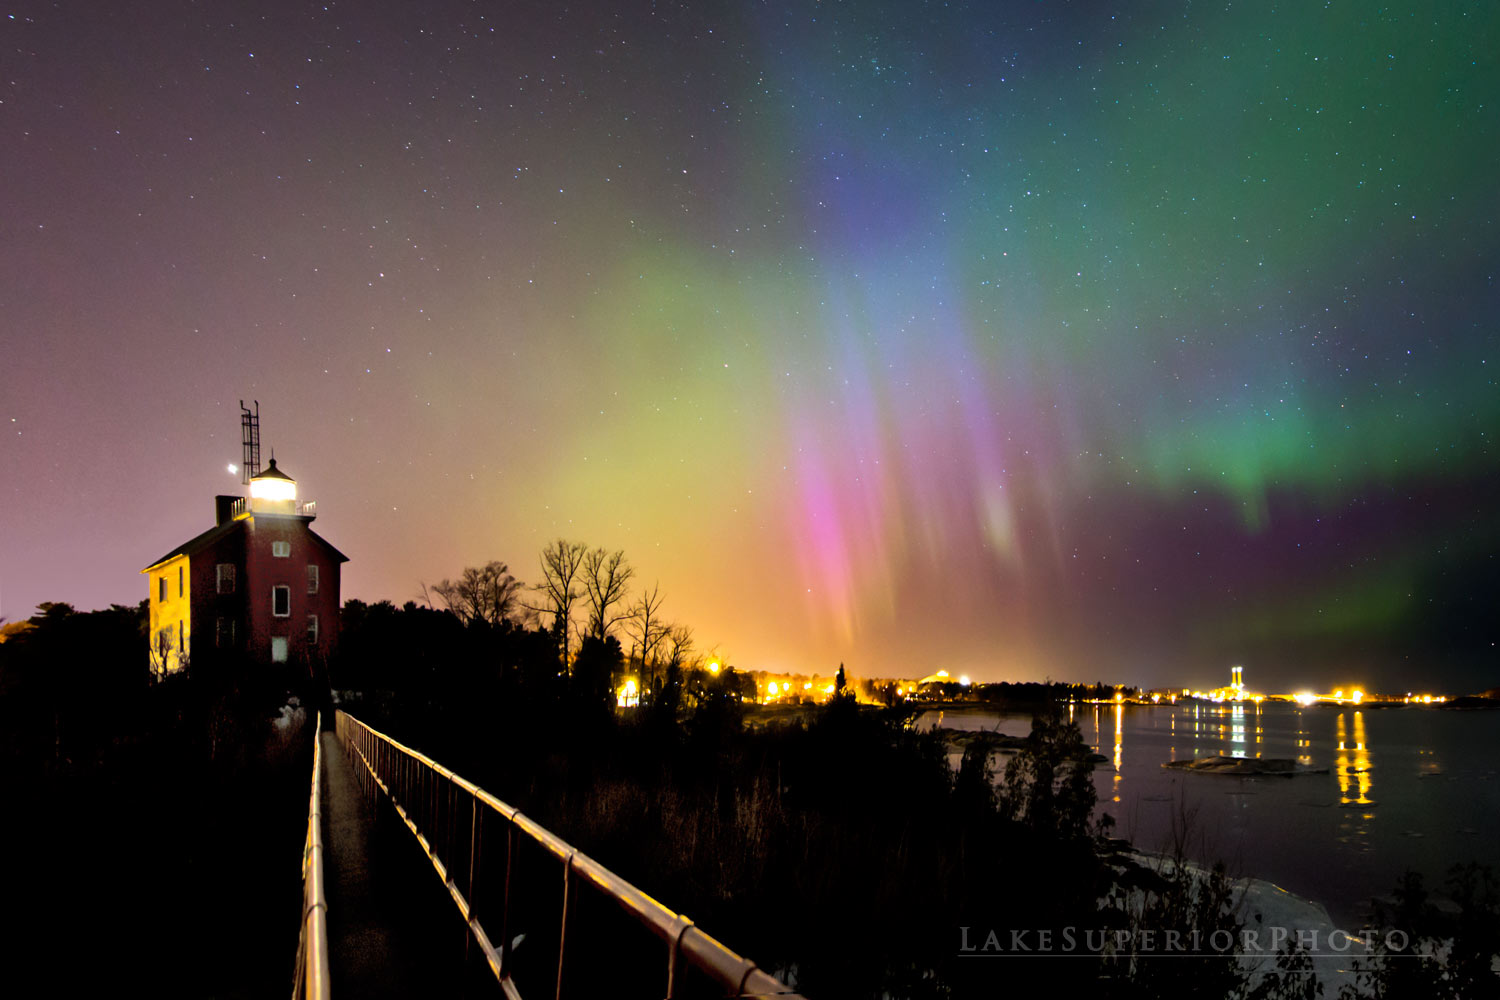 Rainbow-colored northern lights glisten above a lighthouse on the shore of Lake Superior.